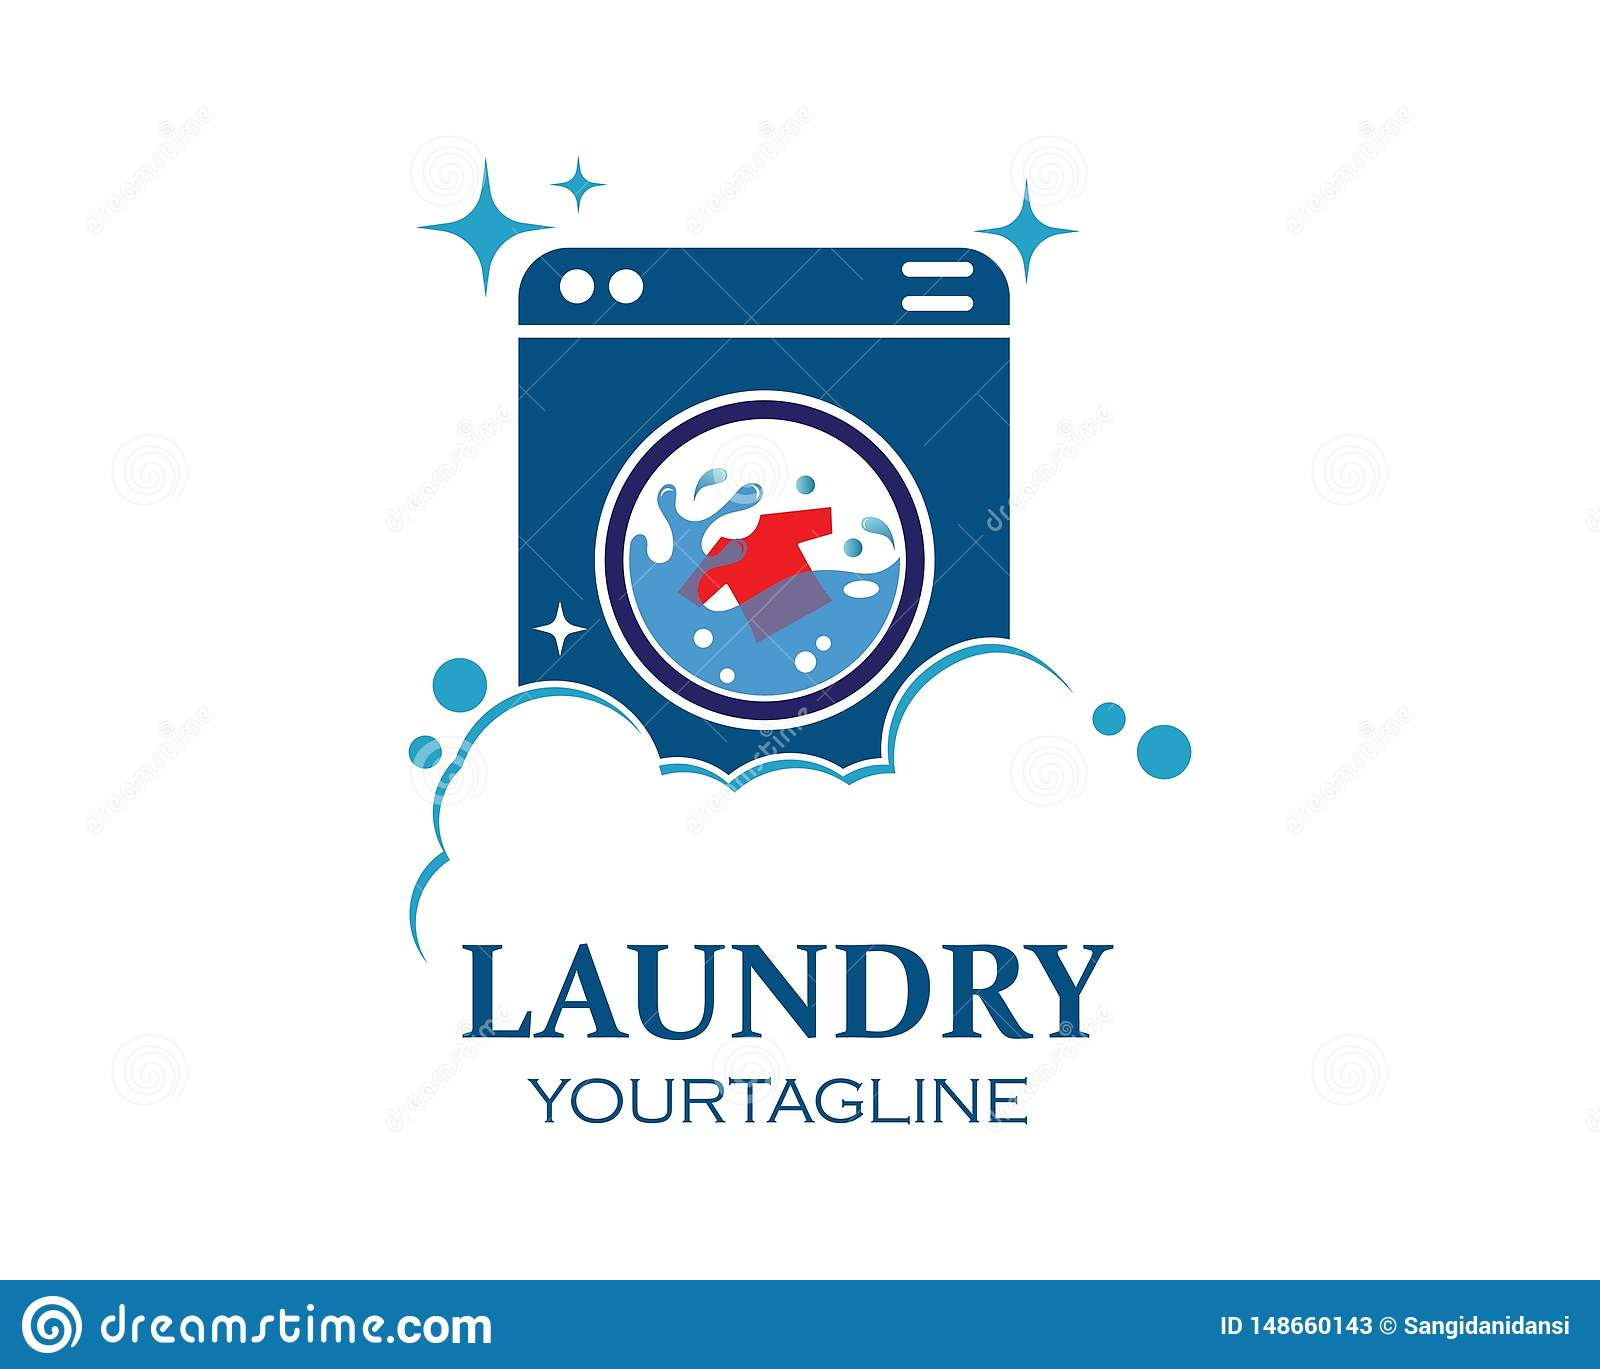 washing clothes logo icon vector of laundry service design